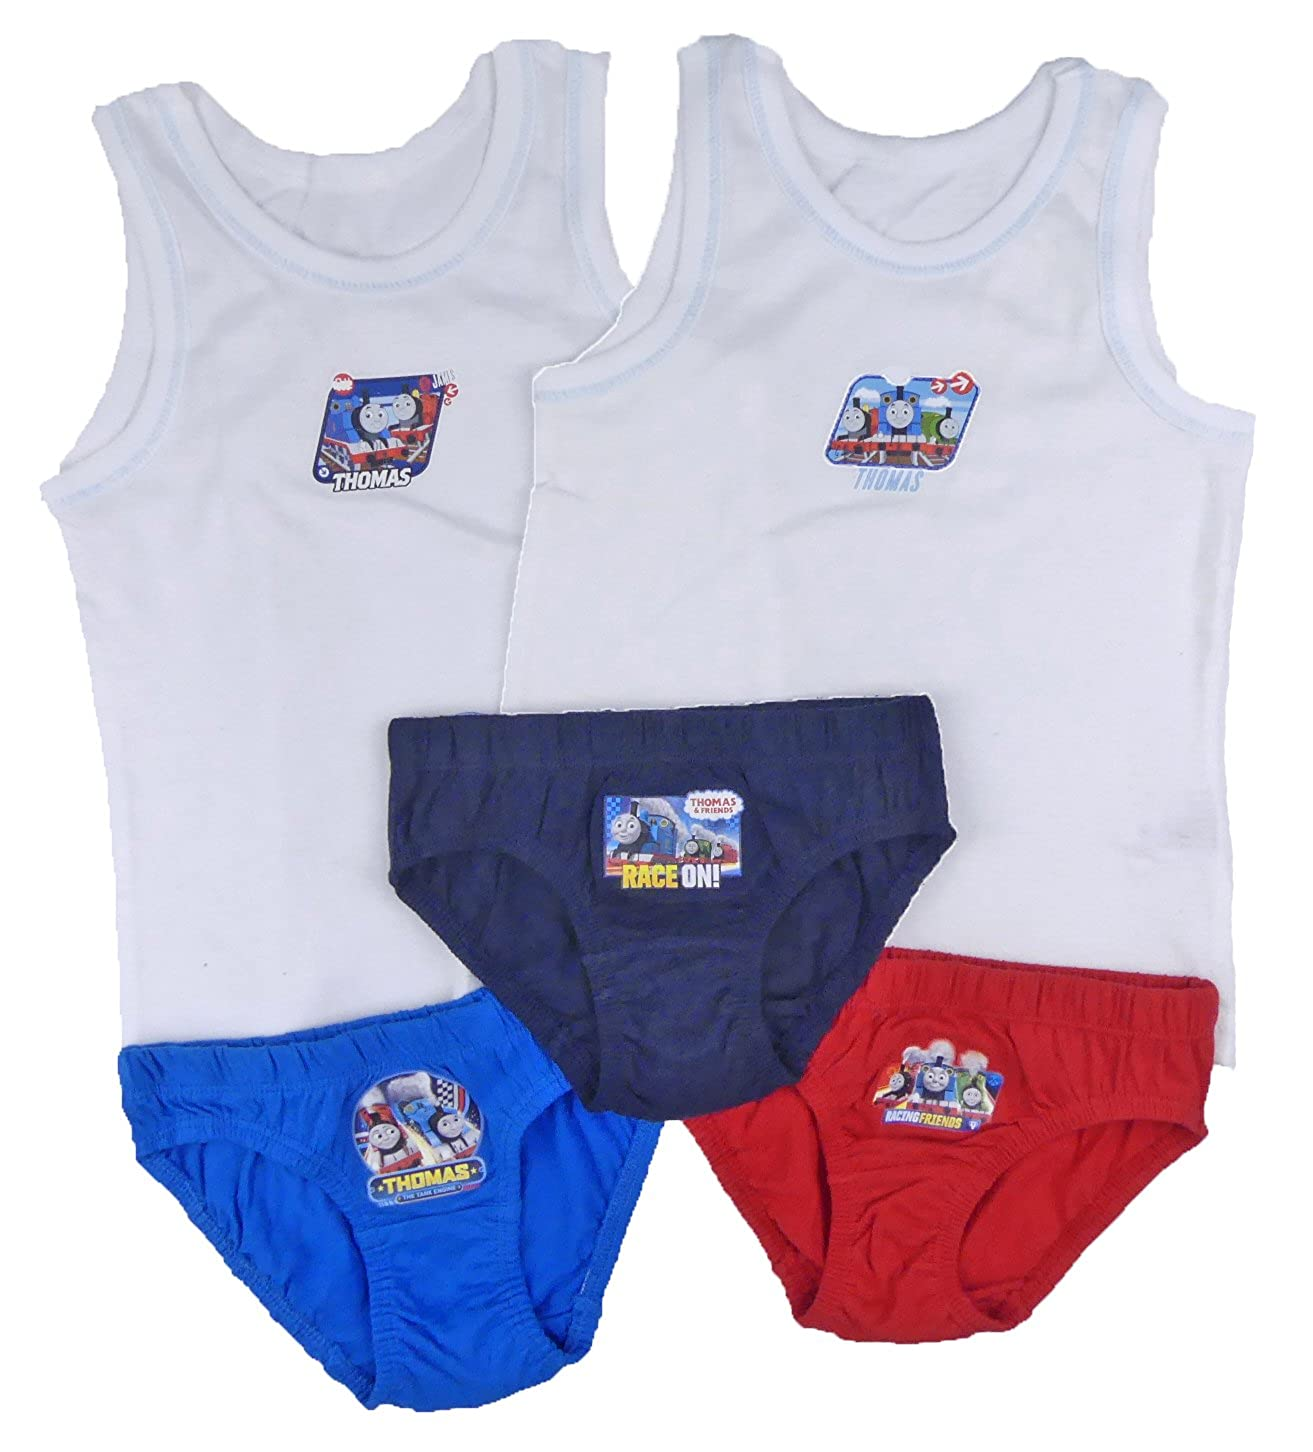 Thomas the Tank Engine Vests and Underpants Set sizes